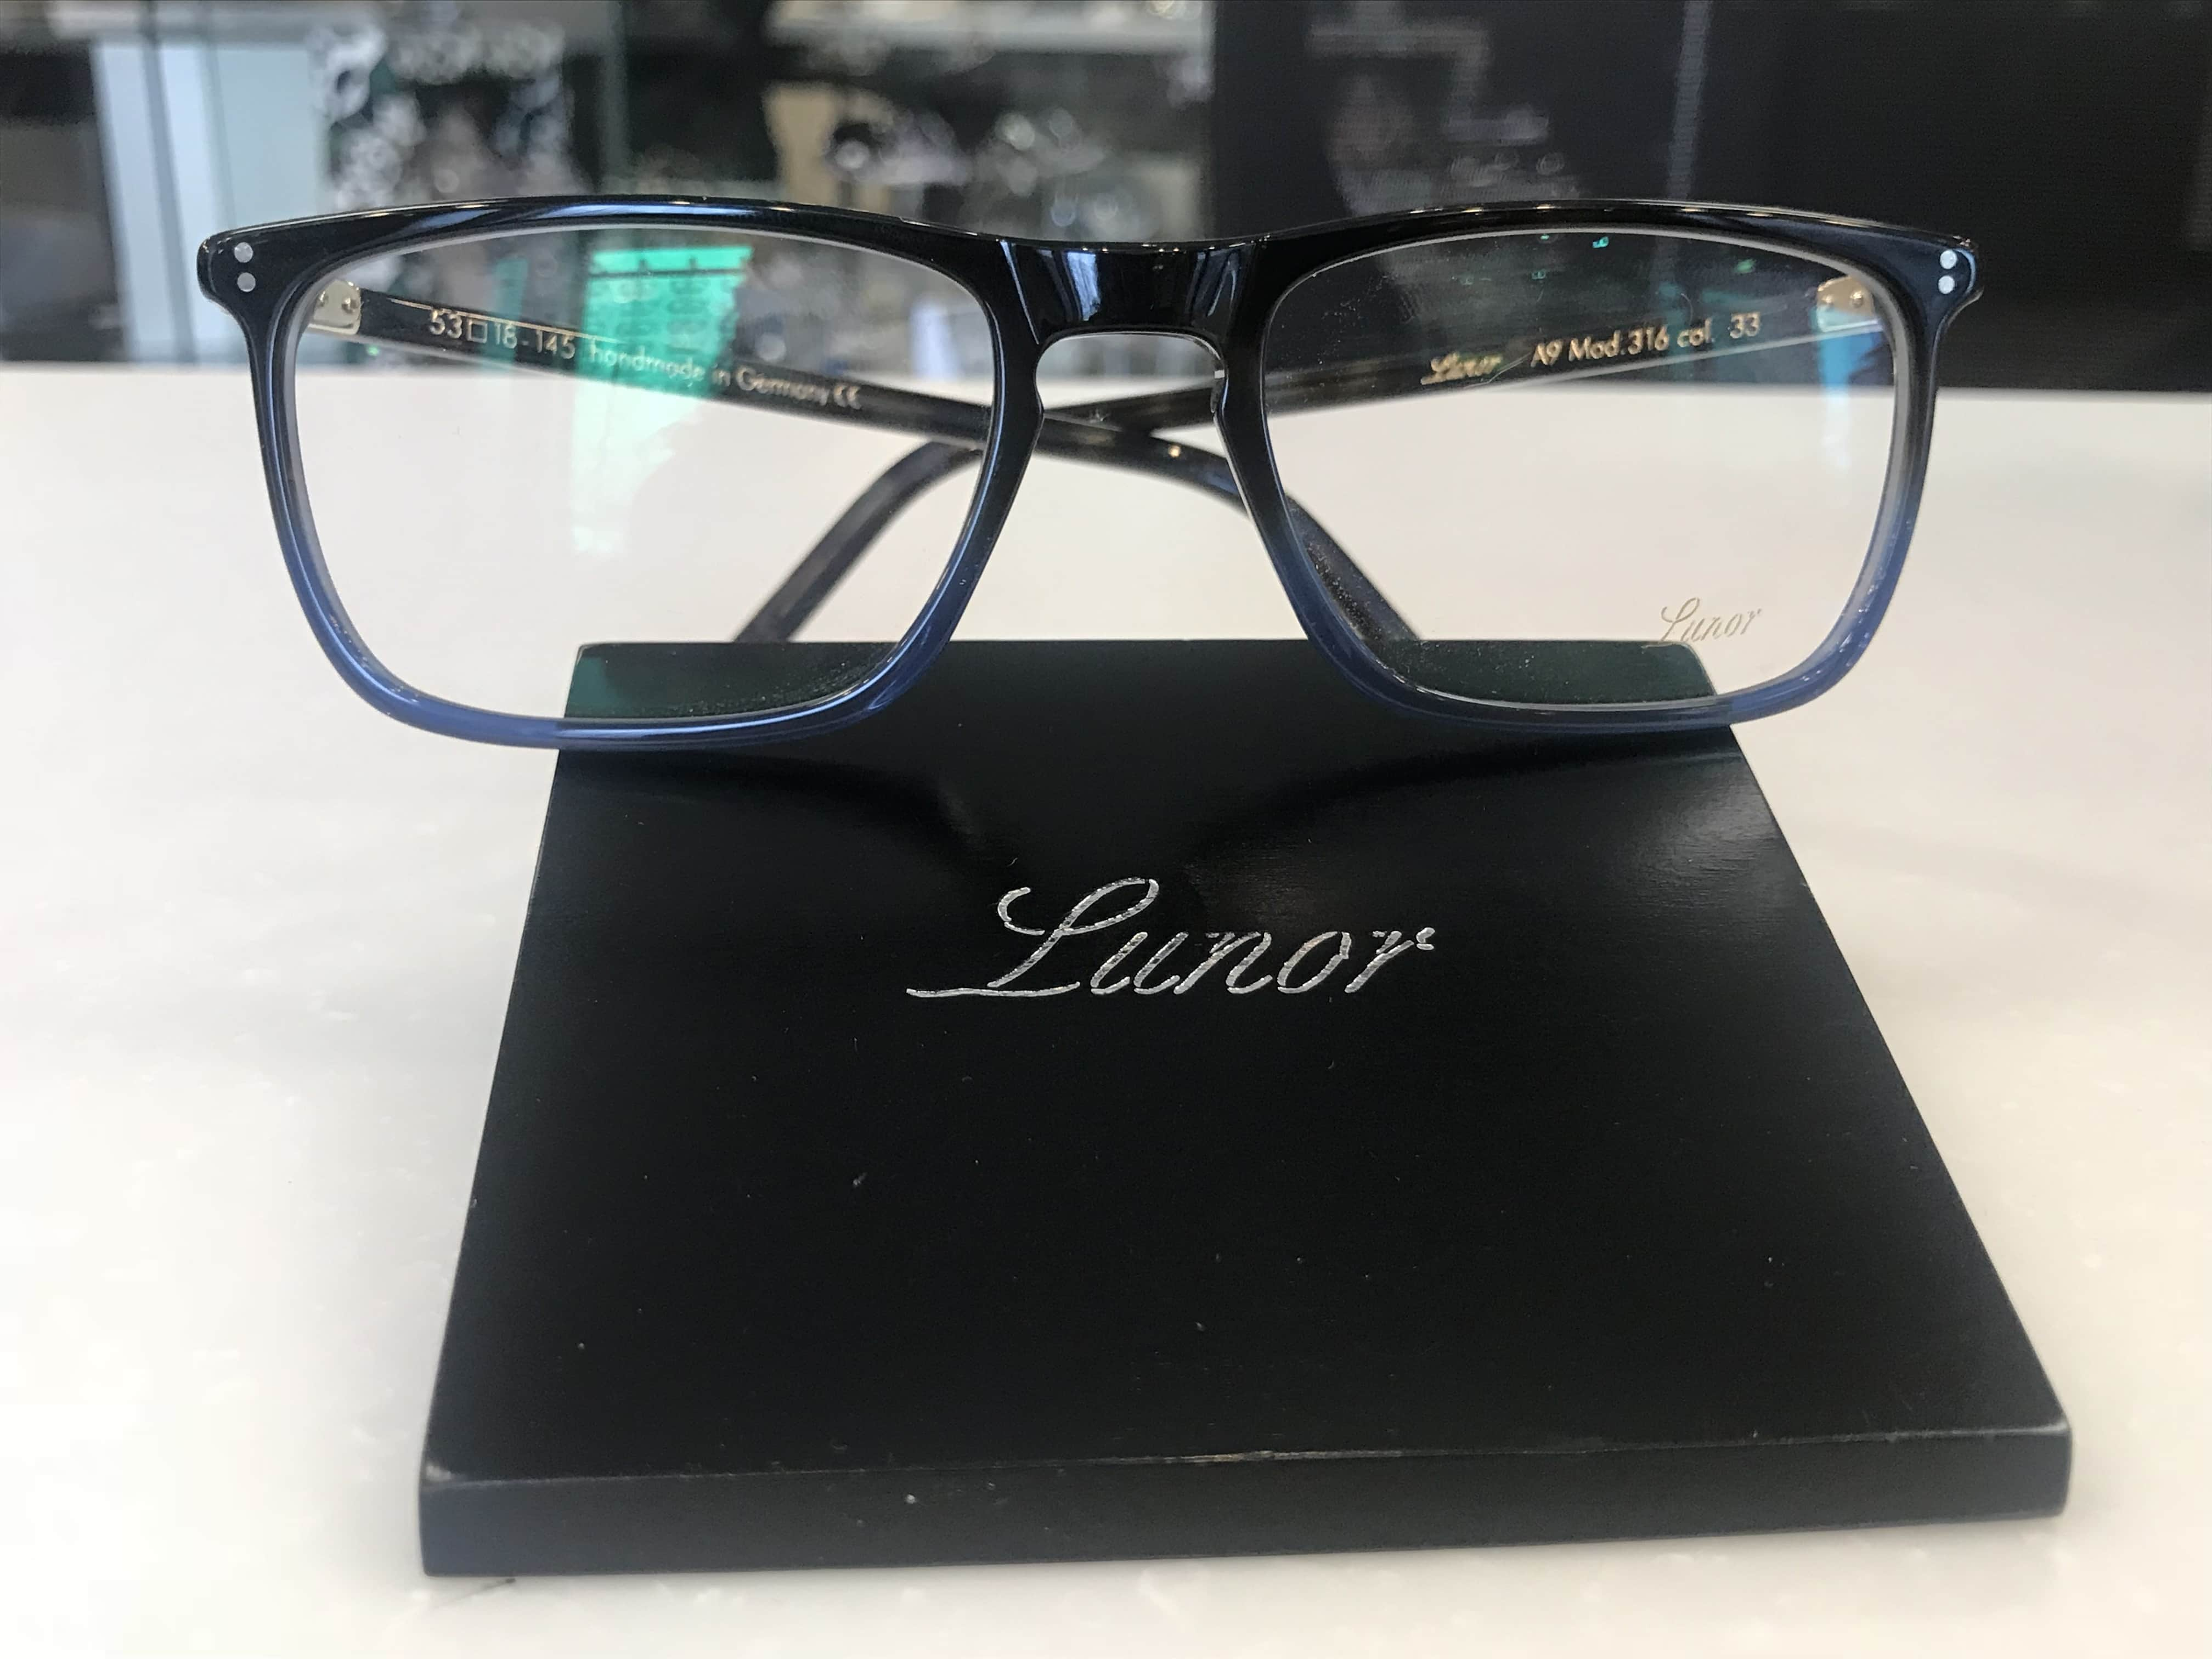 Lunor Model 316 frames